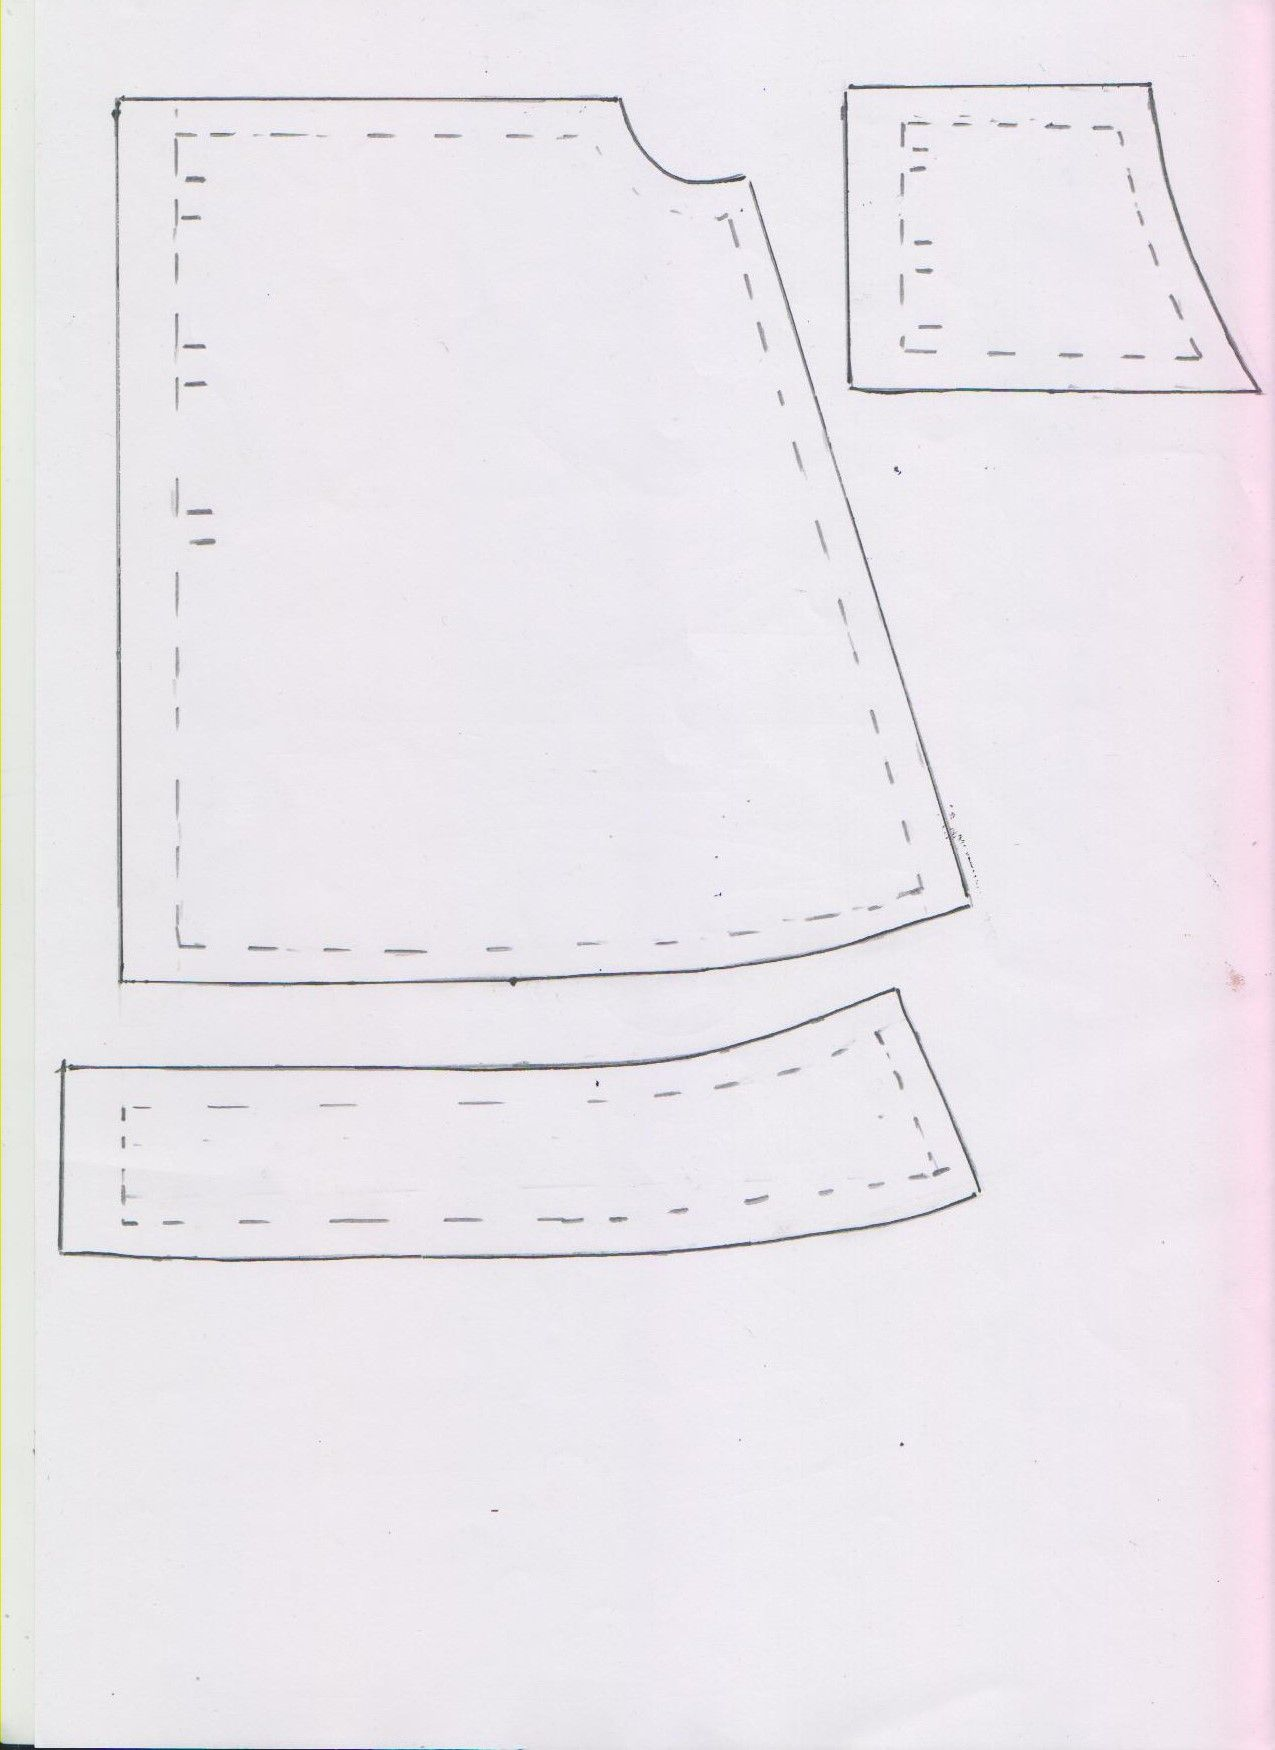 This is the second part (the back) for the denim dress for Baby Born ...